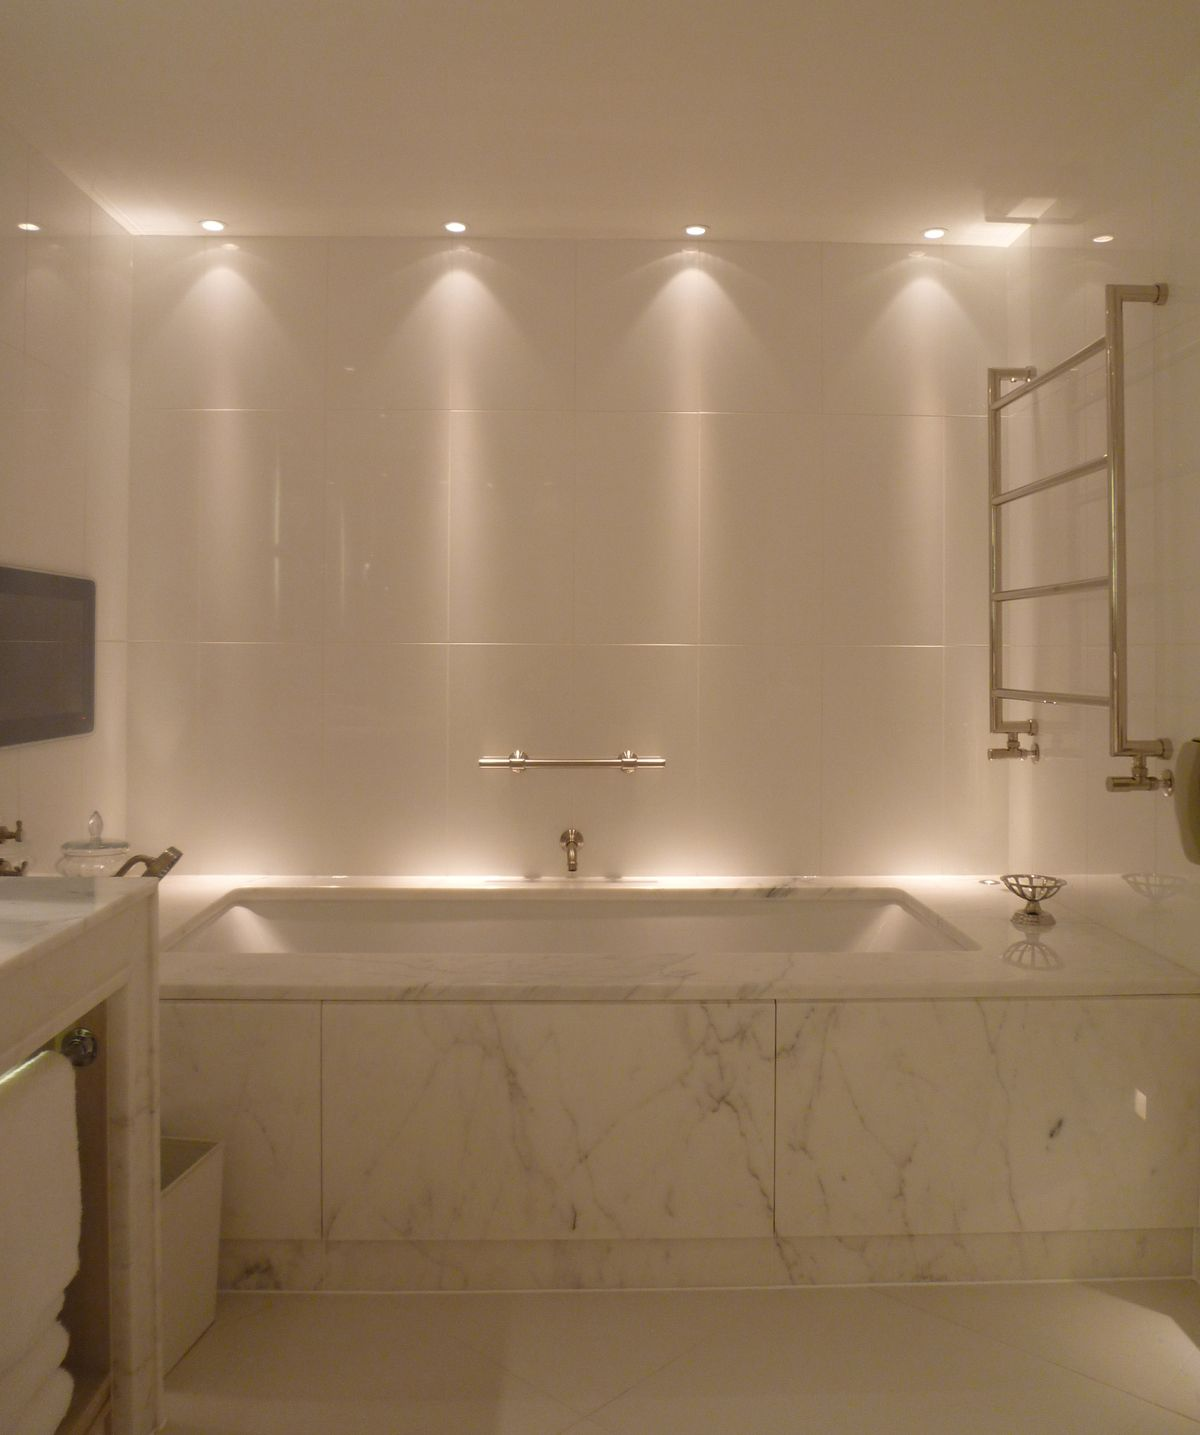 Bathroom Lighting Design Ideas: Bathroom Lighting Design By John Cullen Lighting In 2019